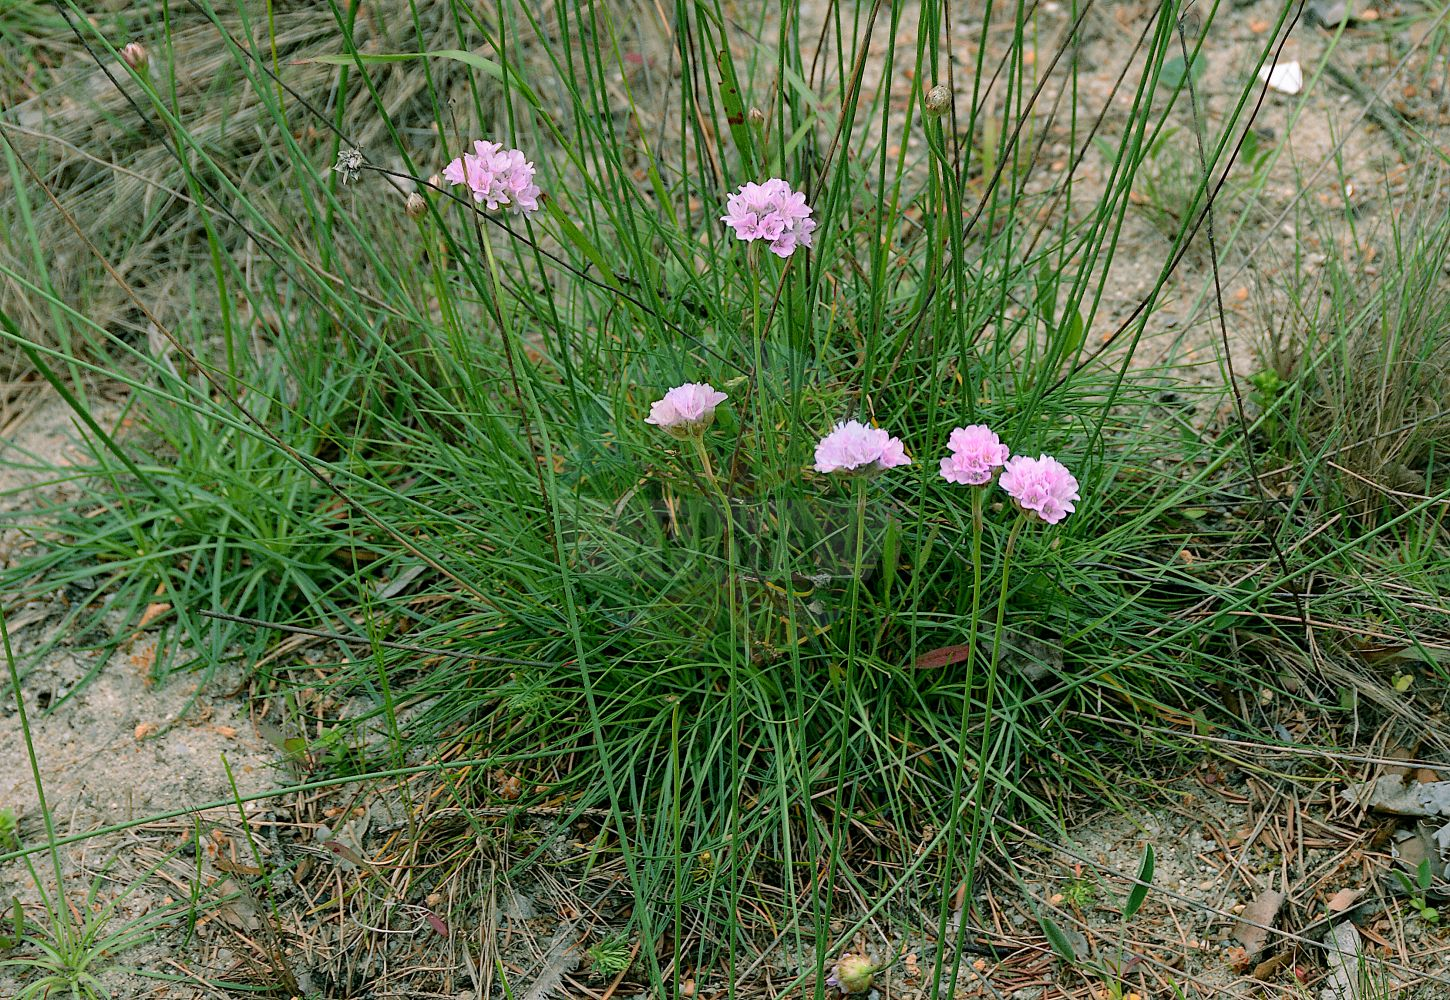 Foto von Armeria maritima (Gewoehnliche Grasnelke - Thrift). Das Foto wurde in Berlin, Deutschland aufgenommen. ---- Photo of Armeria maritima (Gewoehnliche Grasnelke - Thrift).The picture was taken in Berlin, Germany. (Armeria maritima,Gewoehnliche Grasnelke,Thrift,Statice armeria,Statice maritima,Statice vulgaris,Alpen-Grasnelke,Bottendorfer Galmei-Grasnelke,Echte Grasnelke,Hallers Grasnelke,Sand-Grasnelke,Seapink,Sea Pink,Armeria,Grasnelke,Thrift,Plumbaginaceae,Bleiwurzgewaechse,Leadwort family)